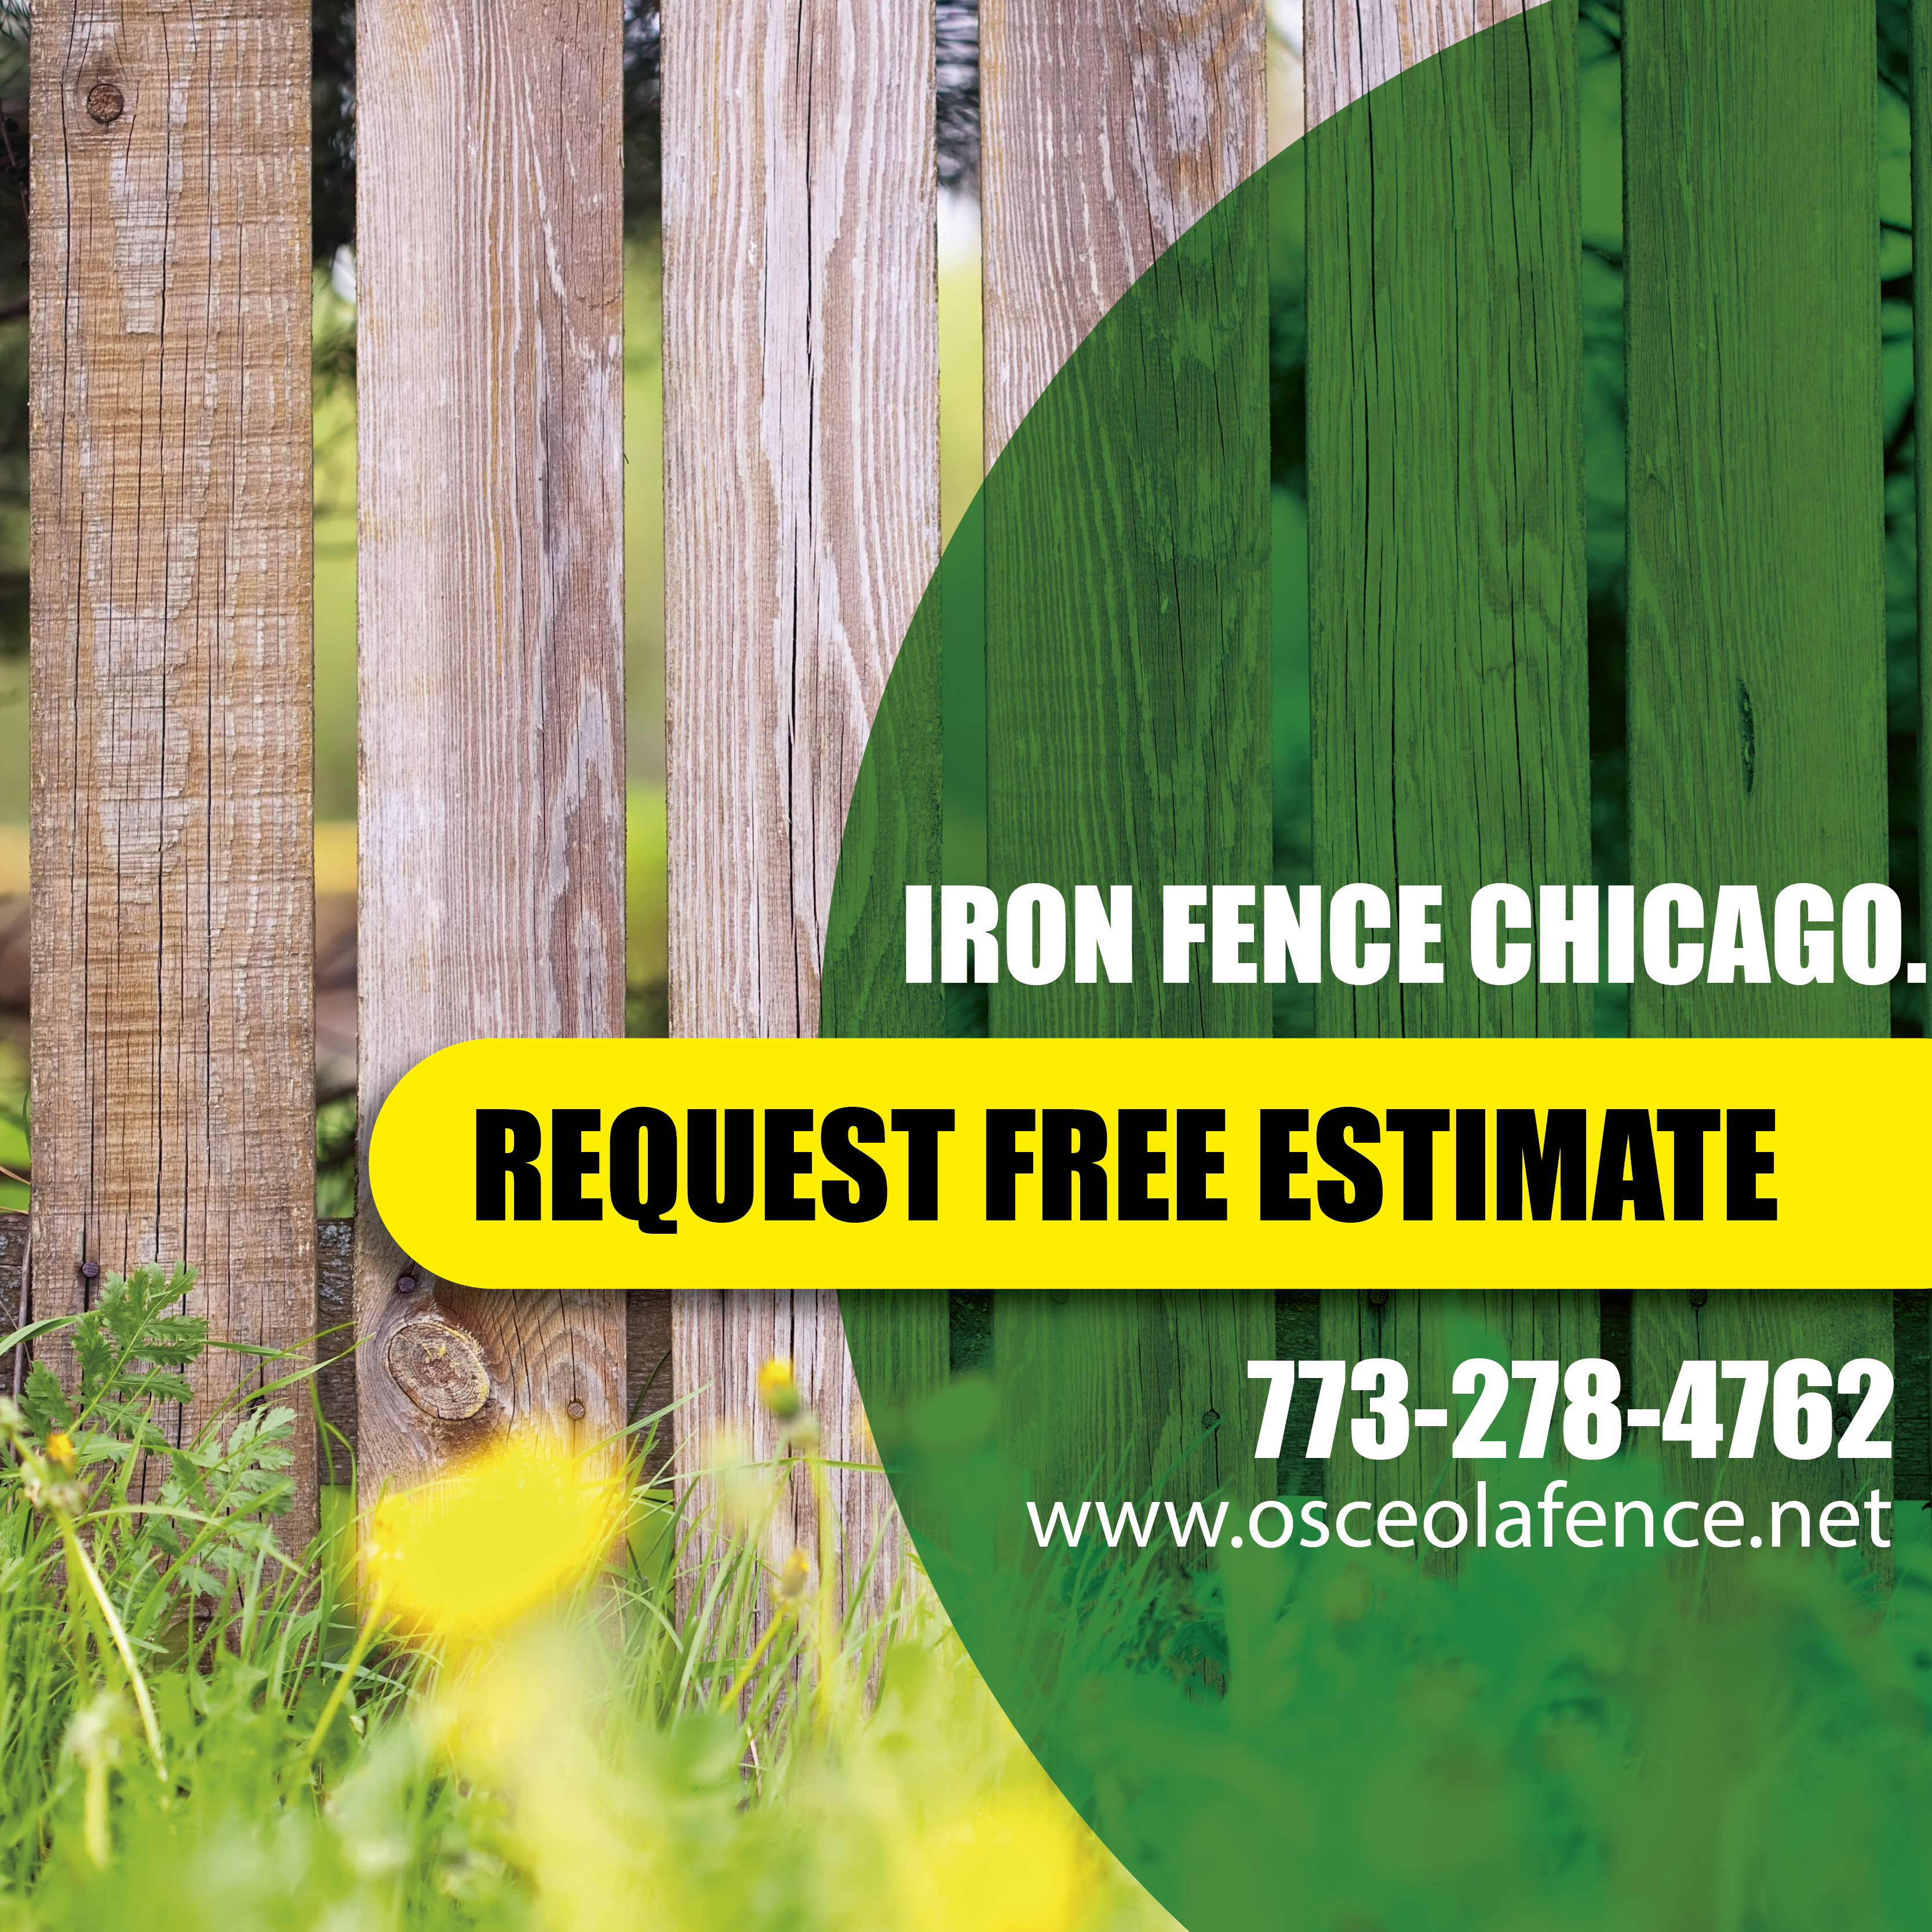 Osceola Fence Corporation Is The Number One Industrial Fence Company And We Will Provided A Large Selectio Wood Fence Installation Wood Fence Fencing Companies